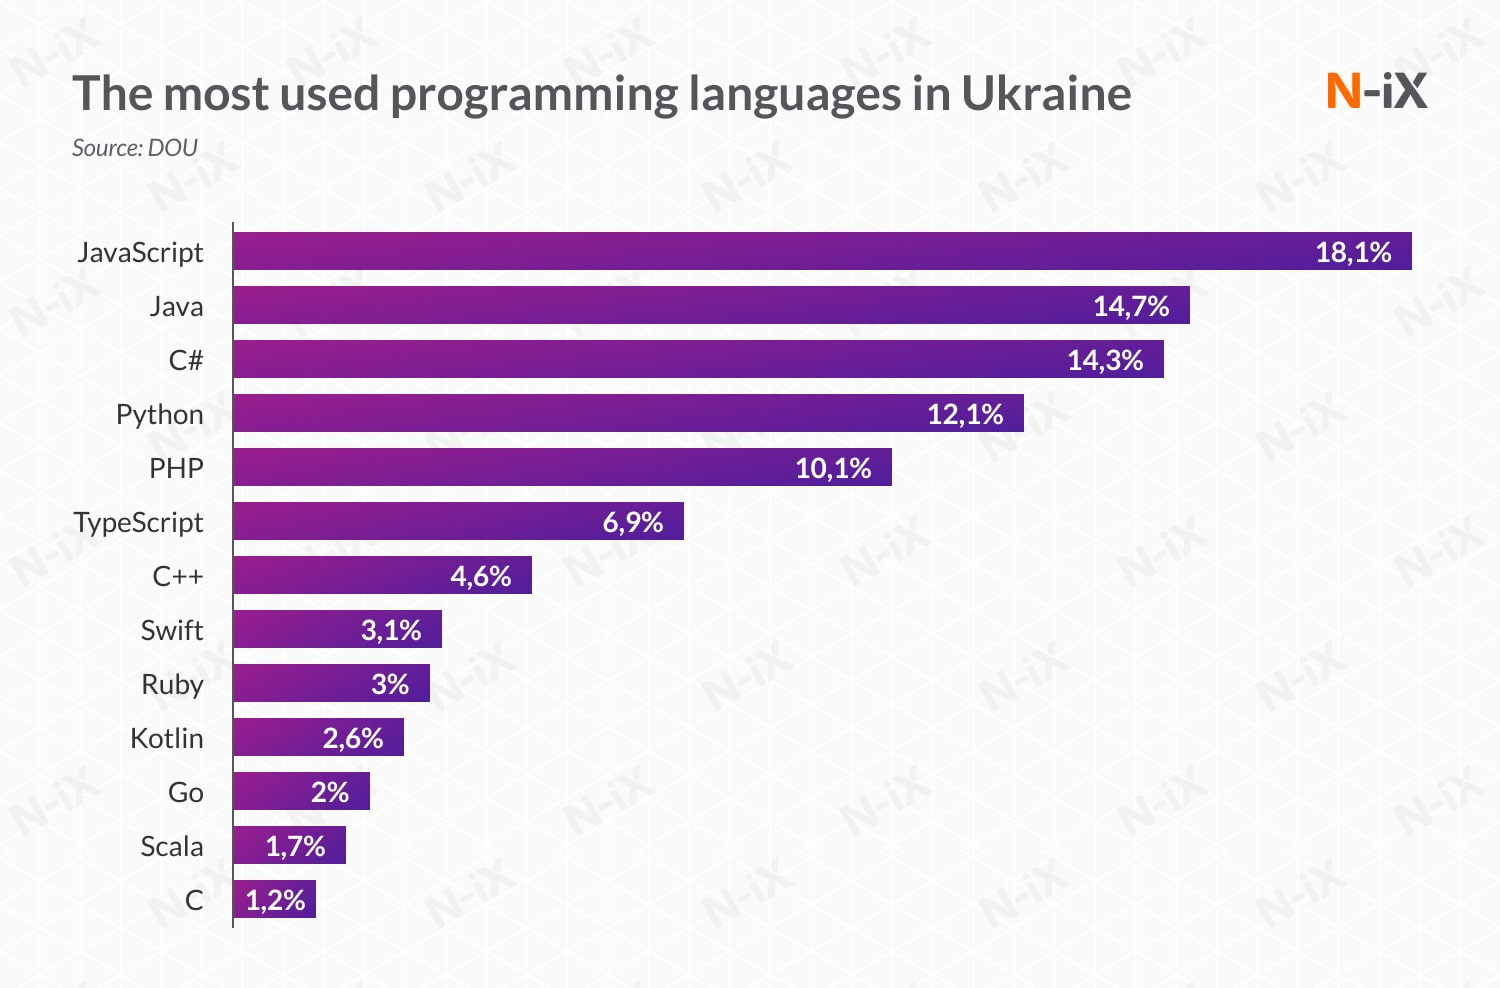 offshore .NET developers: most used programming languages in Ukraine